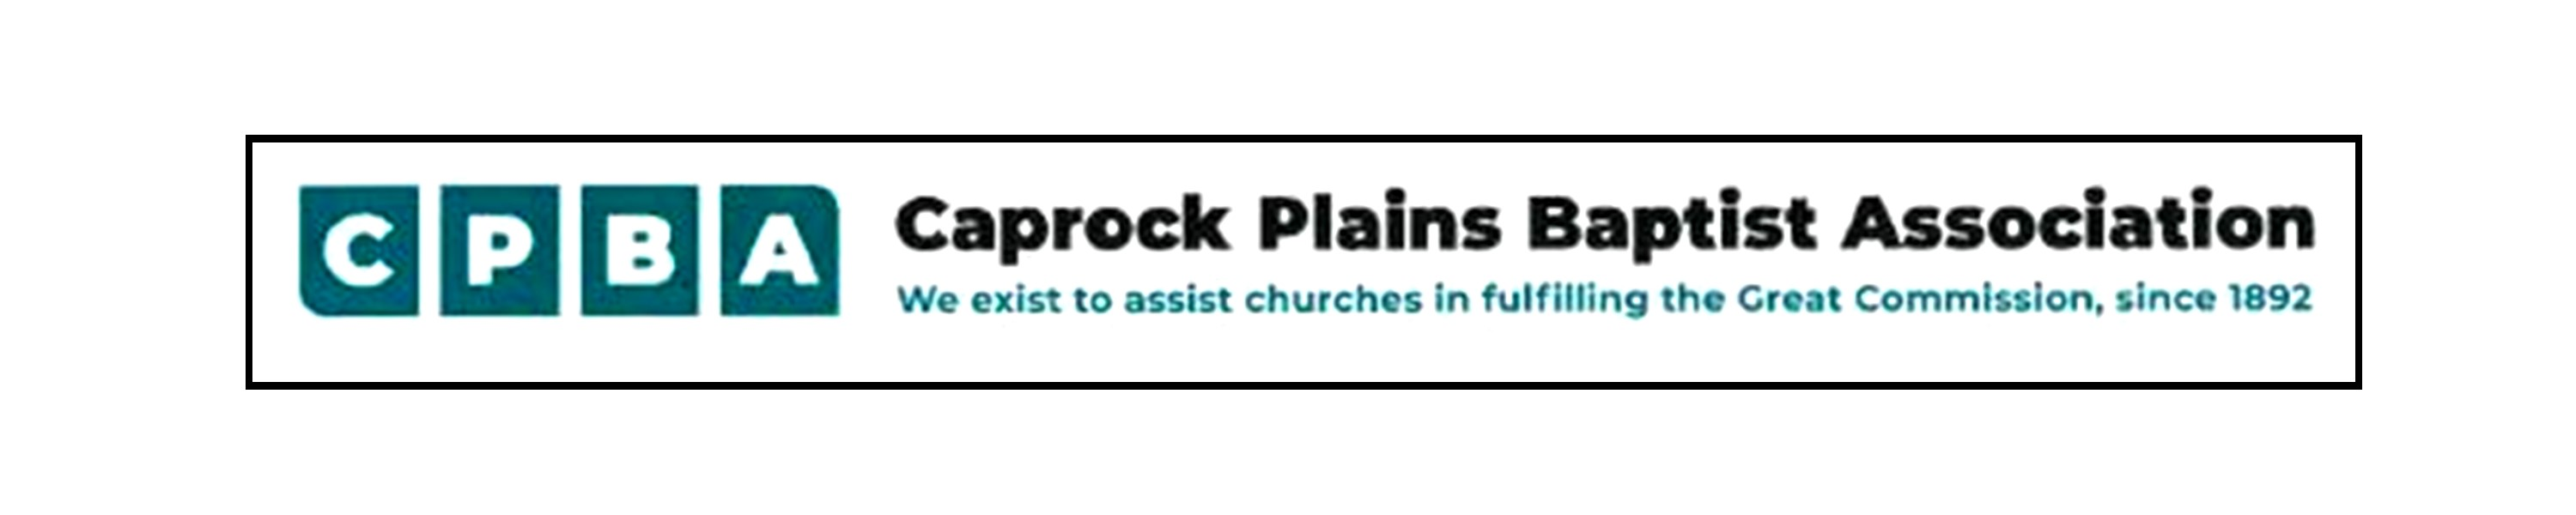 Caprock Plains Baptist Association